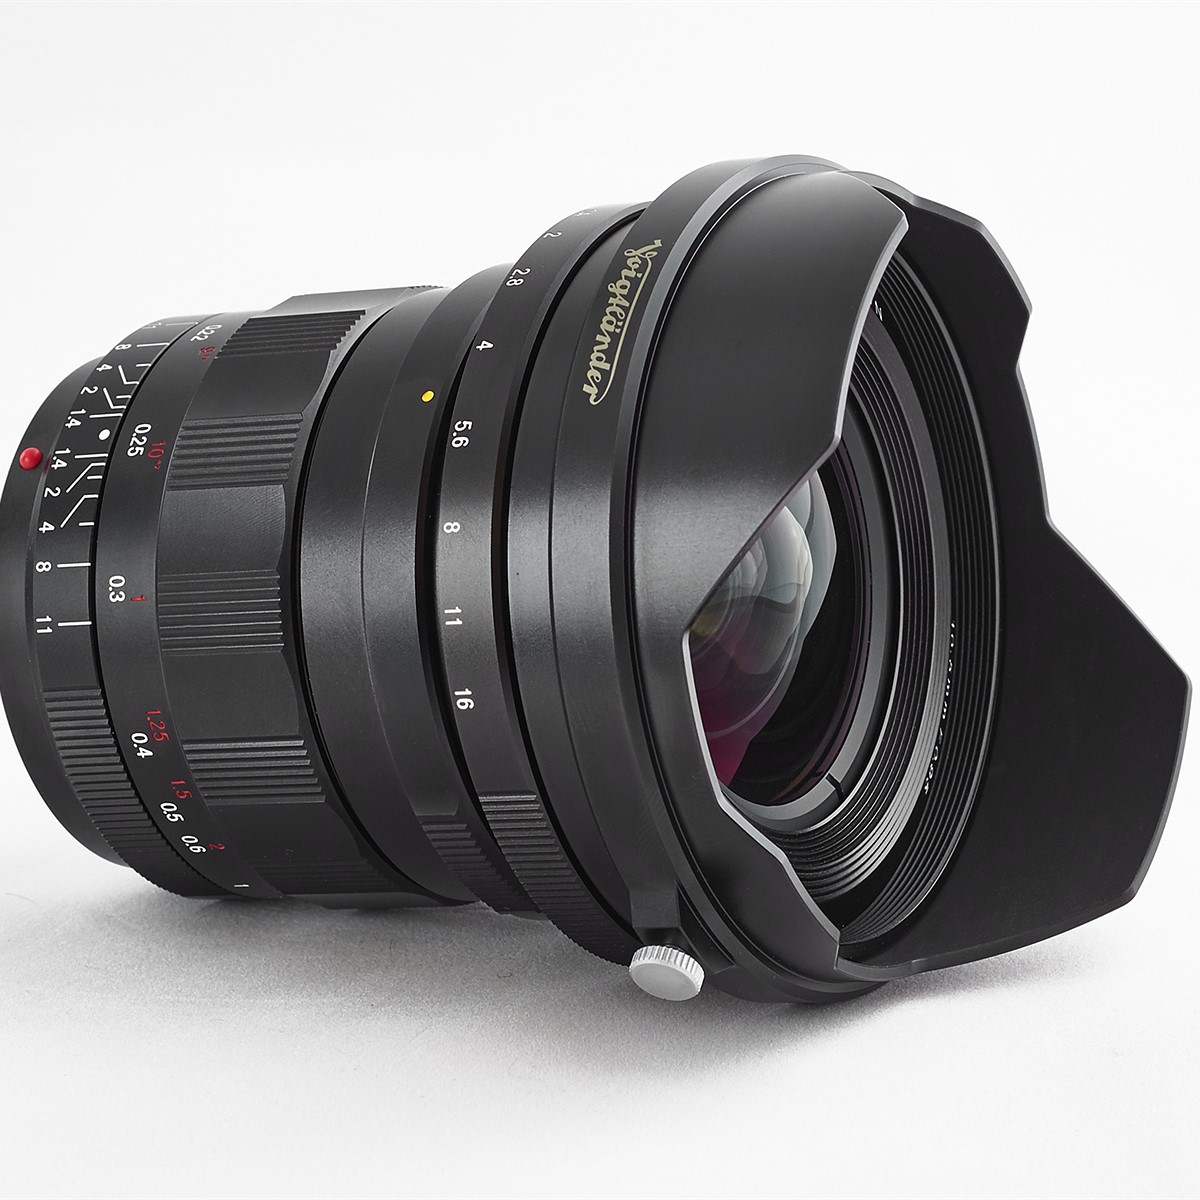 Voigtlander 10.5mm f/0.95 Lens for Micro Four Thirds